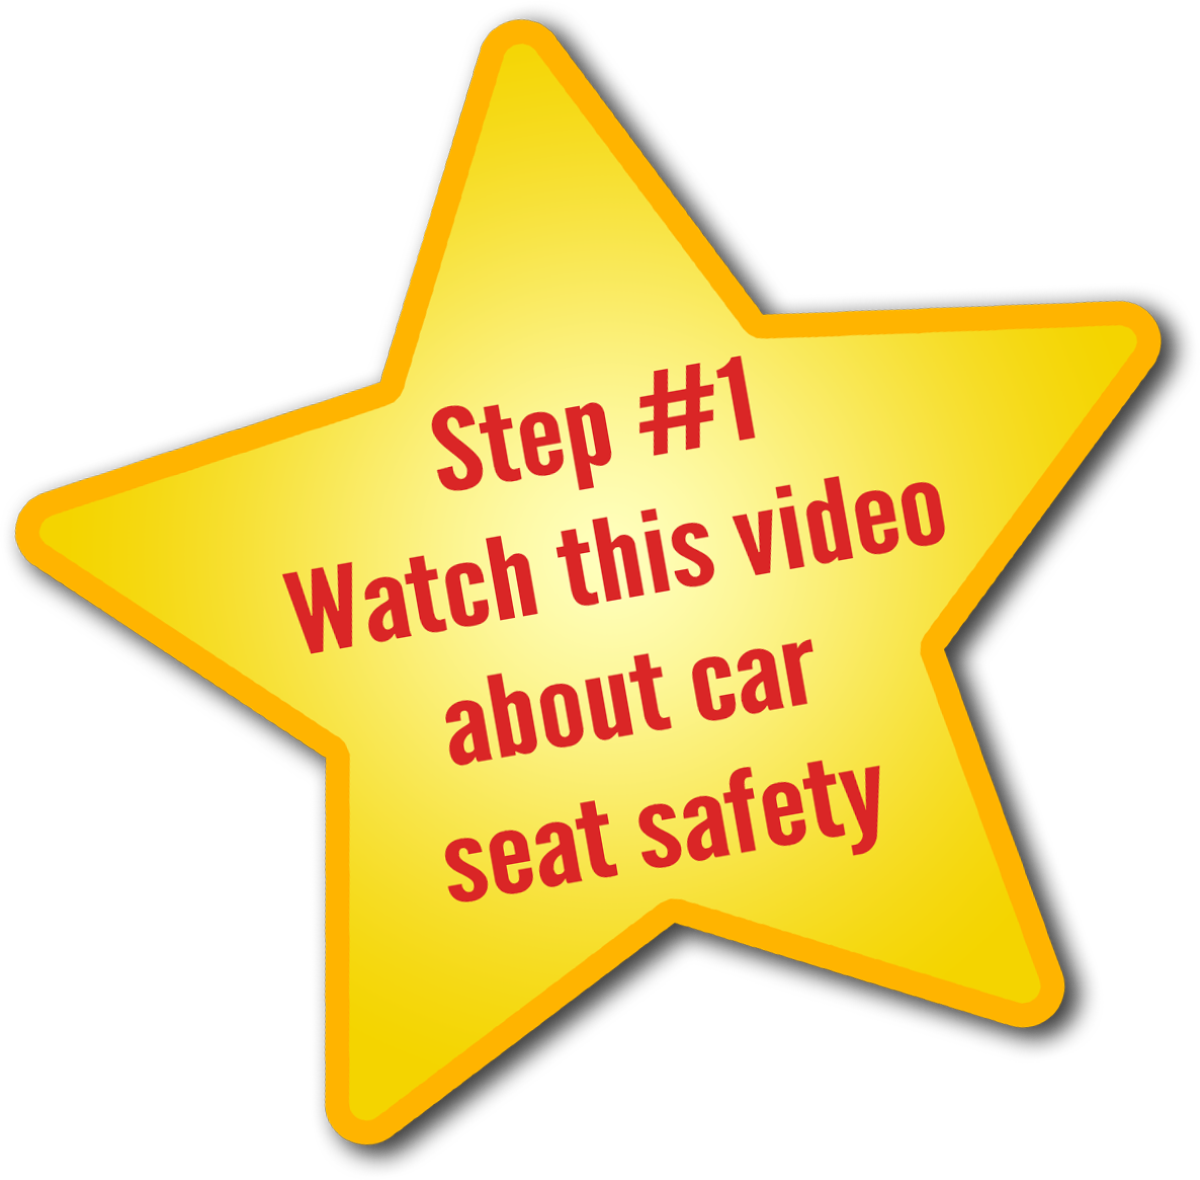 Step 1 - Watch this video about car seat safety